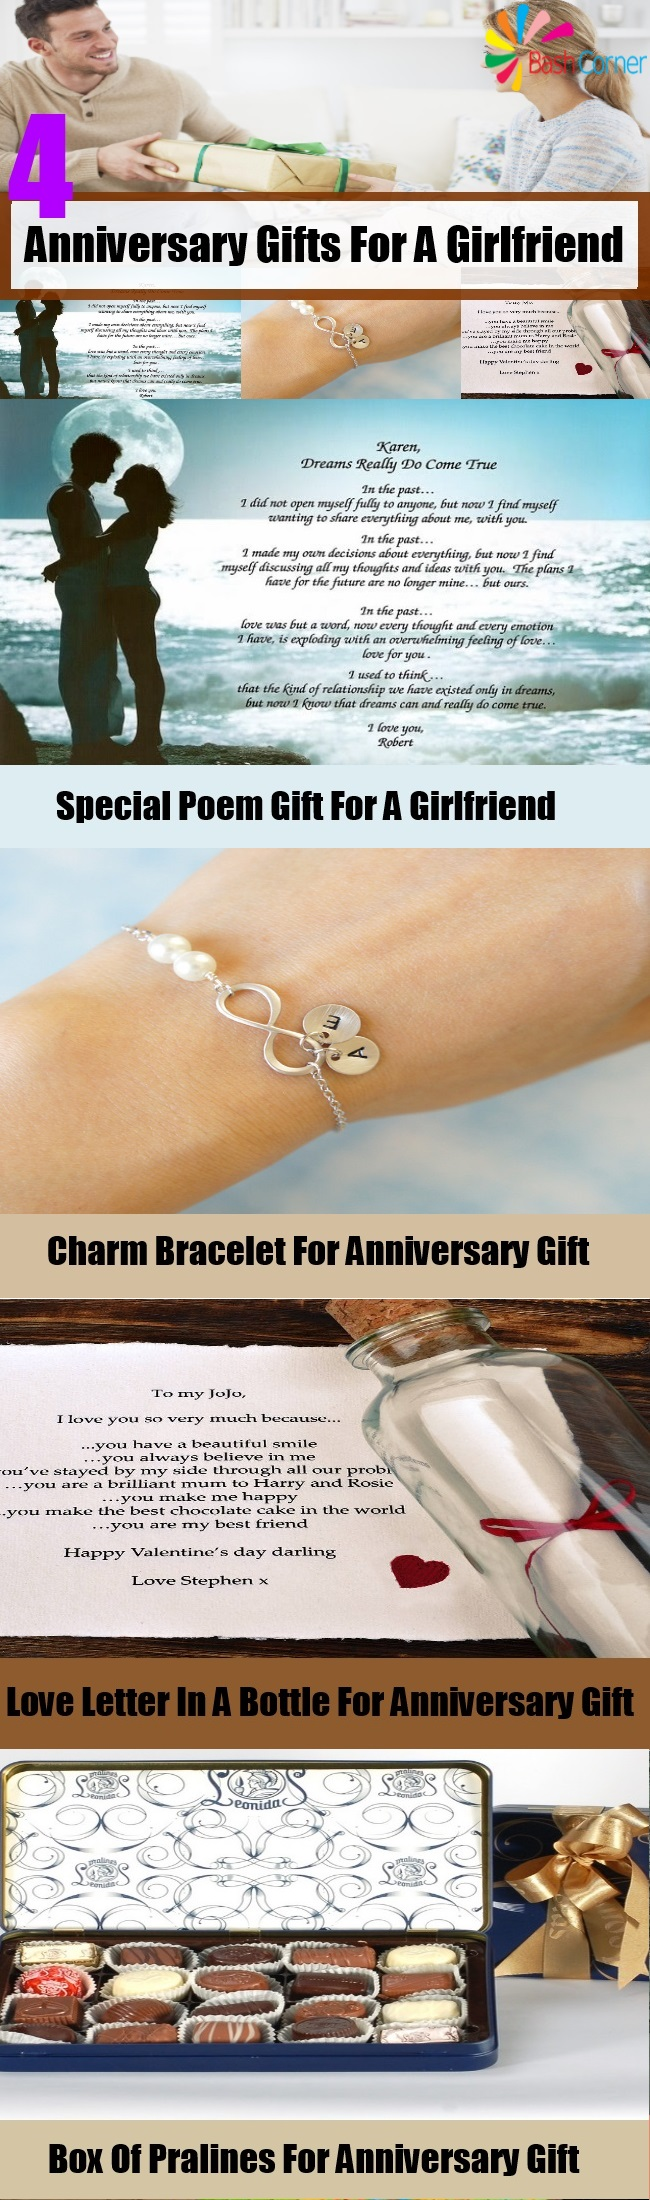 anniversary gifts for a girlfriend gift ideas pinterest